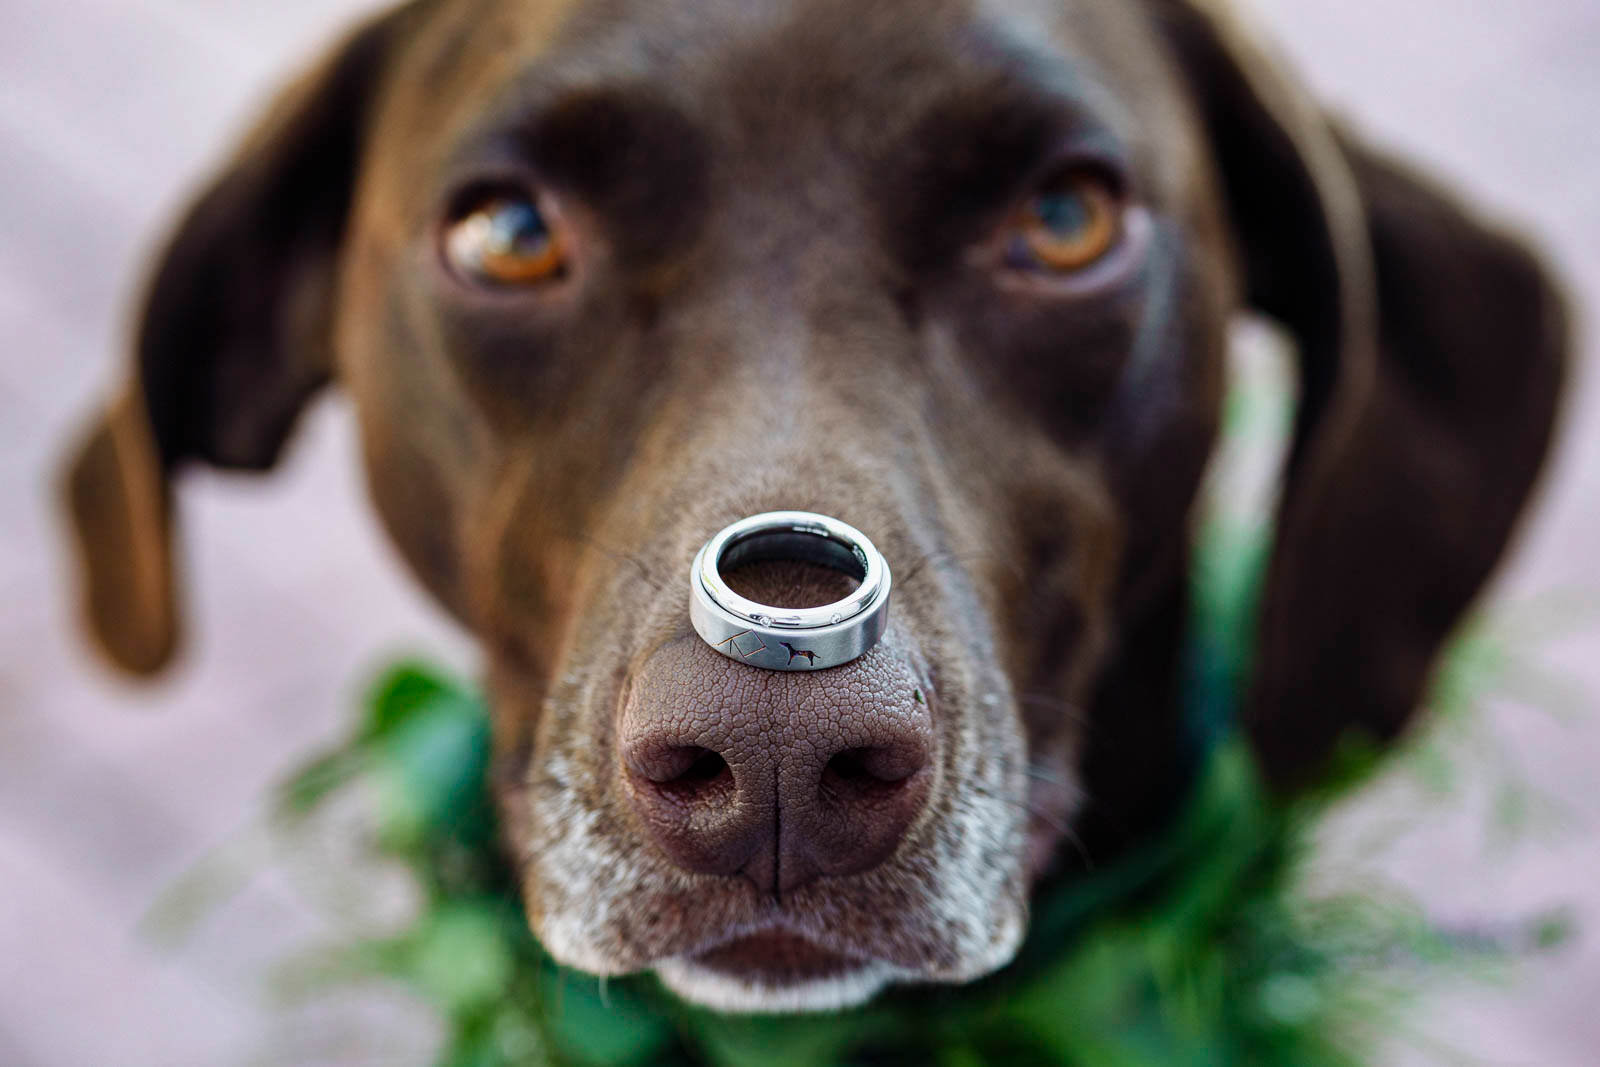 german shorthaired pointer balancing a wedding ring on her nose at Jabajak Vineyard in West Wales